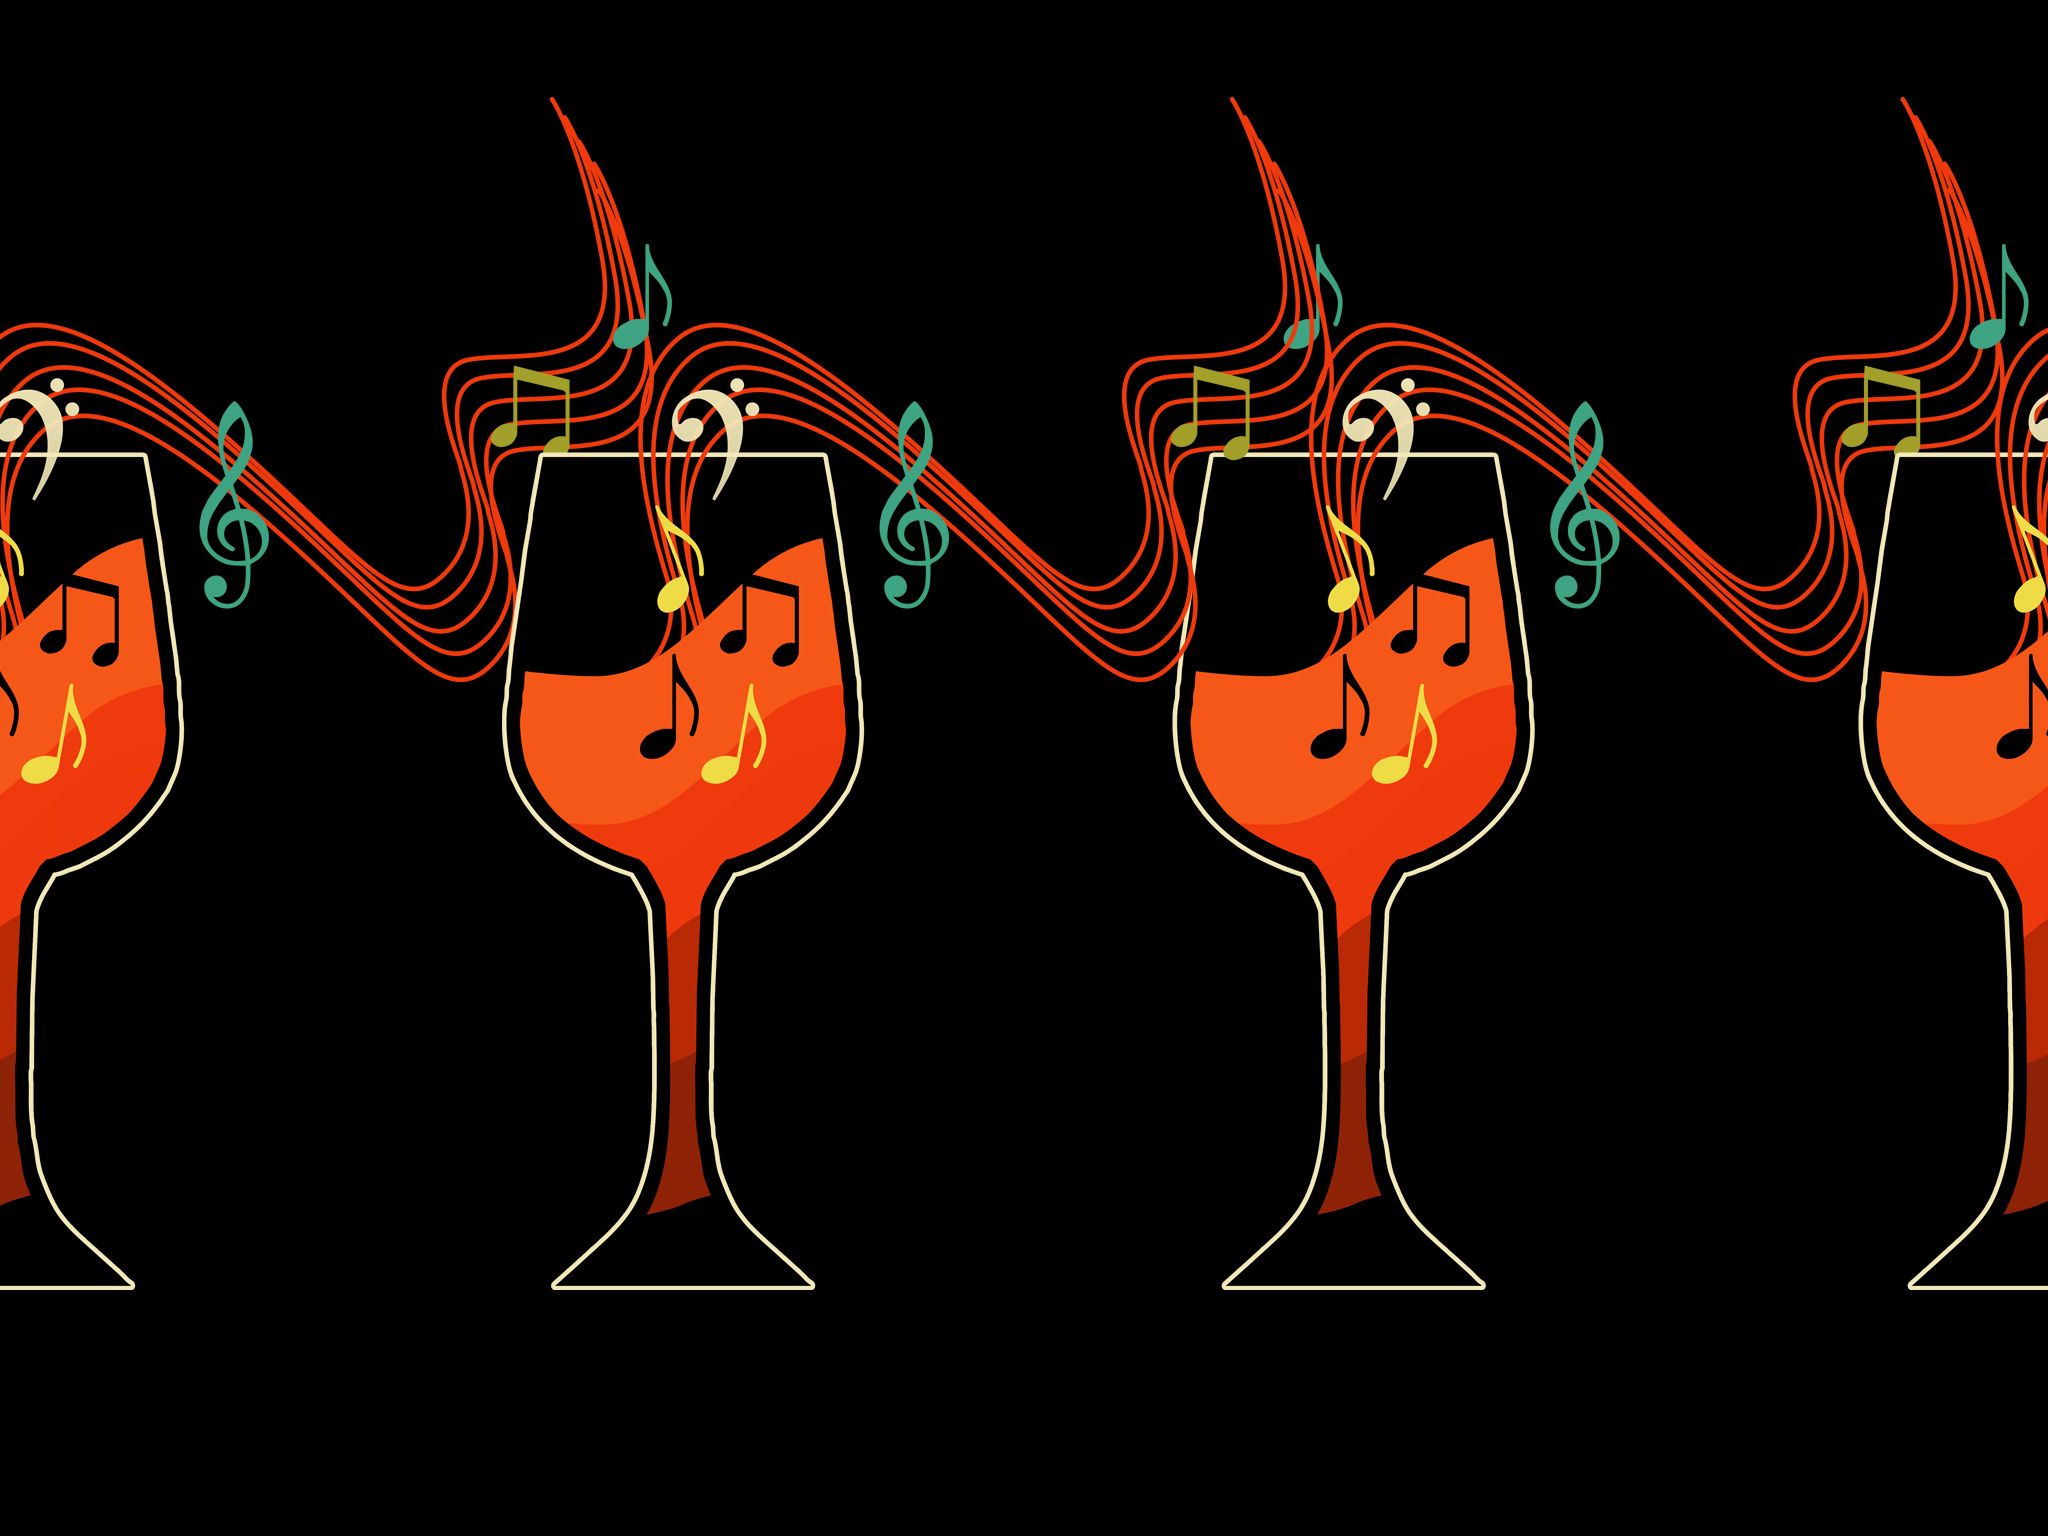 TASTING NOTES - As part of the Orange Wine Festival 2020